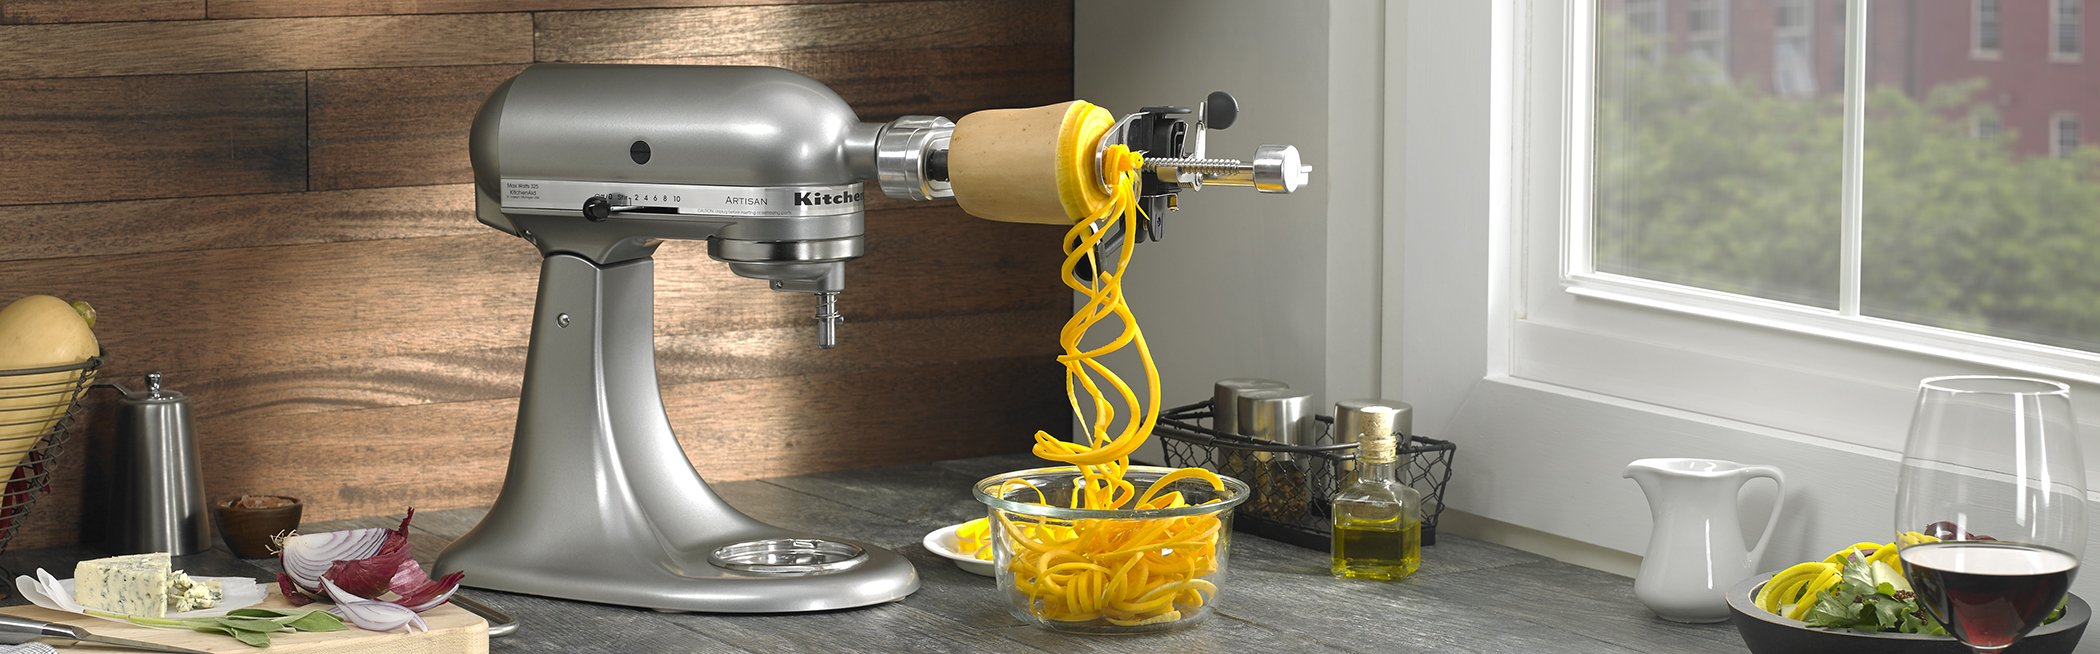 Galleon kitchenaid ksm1apc spiralizer attachment with peel core and slice Kitchenaid artisan replacement parts